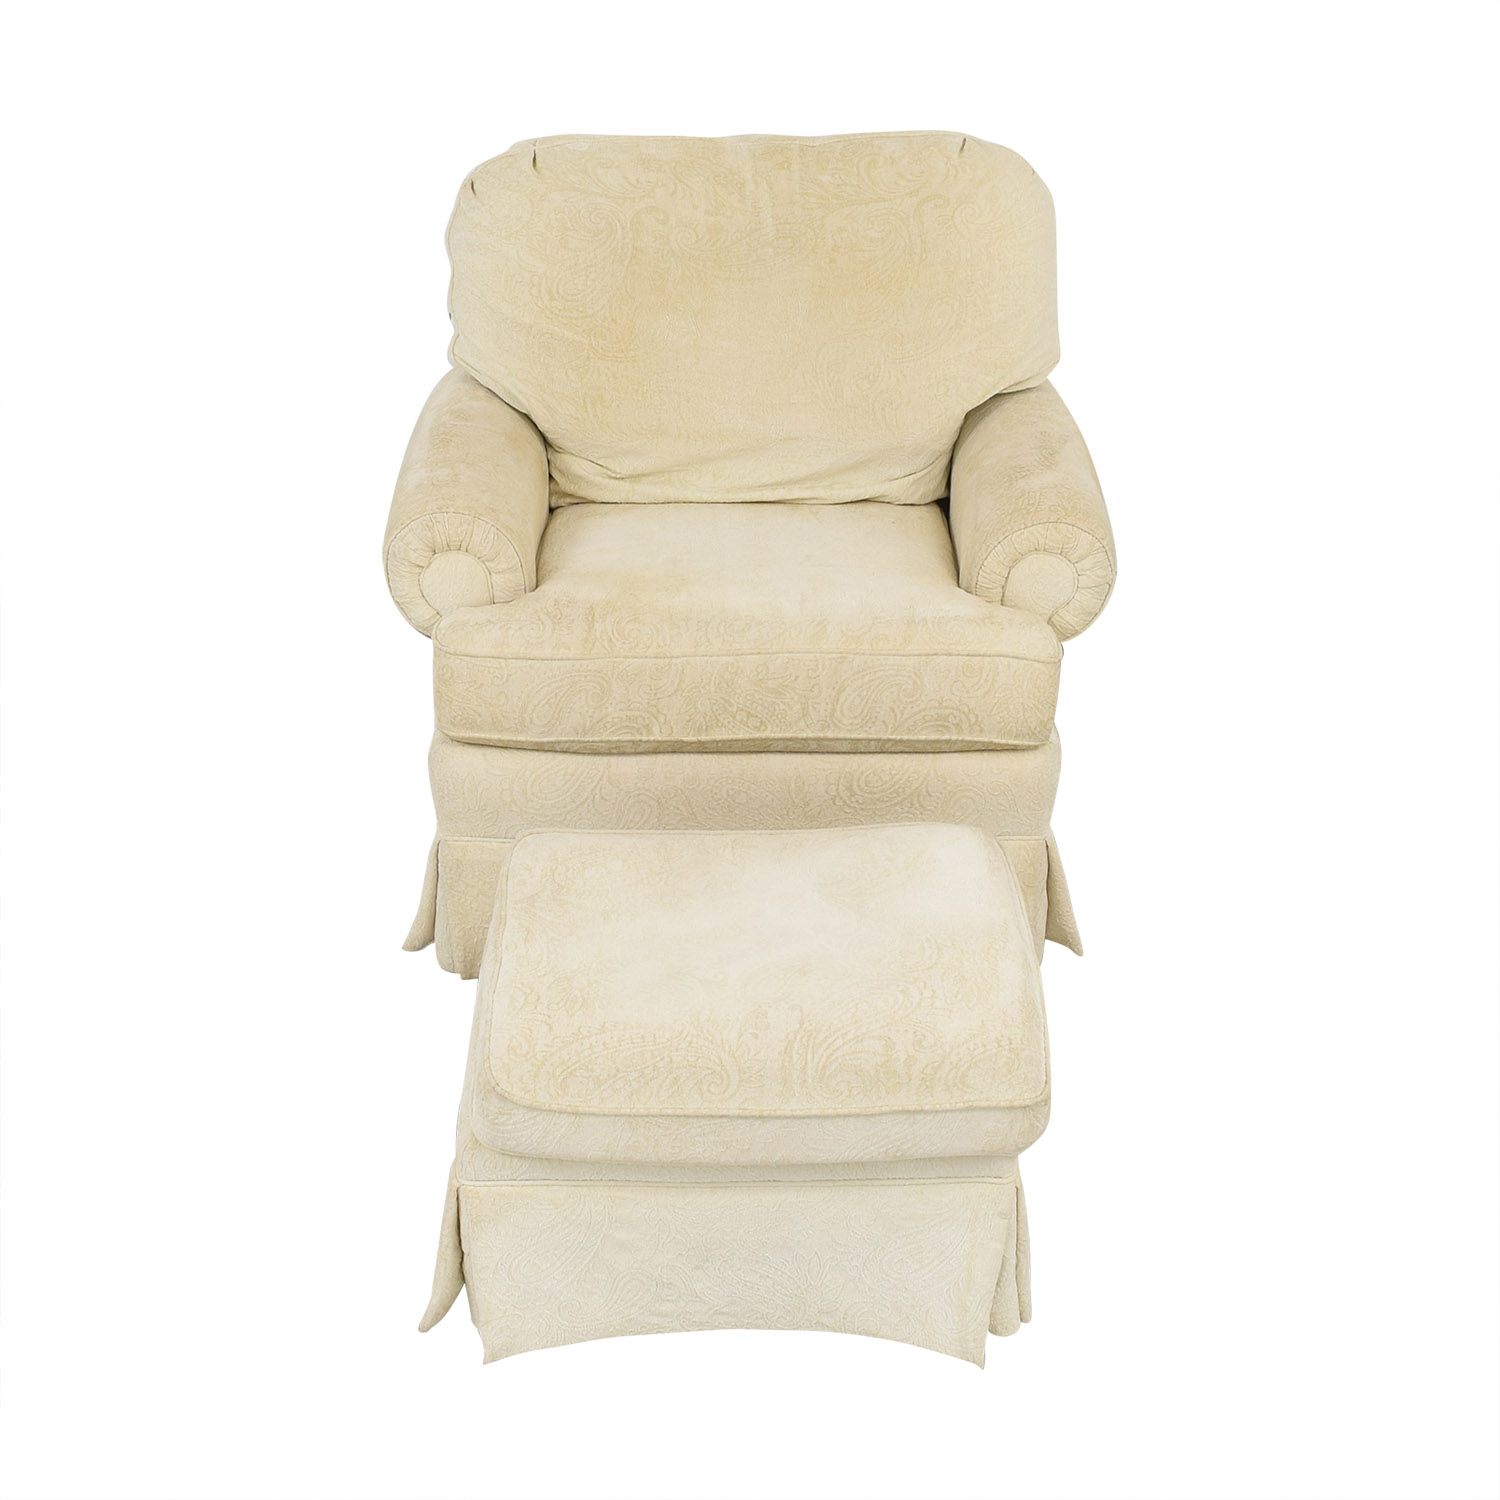 Best Chairs Best Chairs Braxton Swivel Glider and Ottoman Accent Chairs